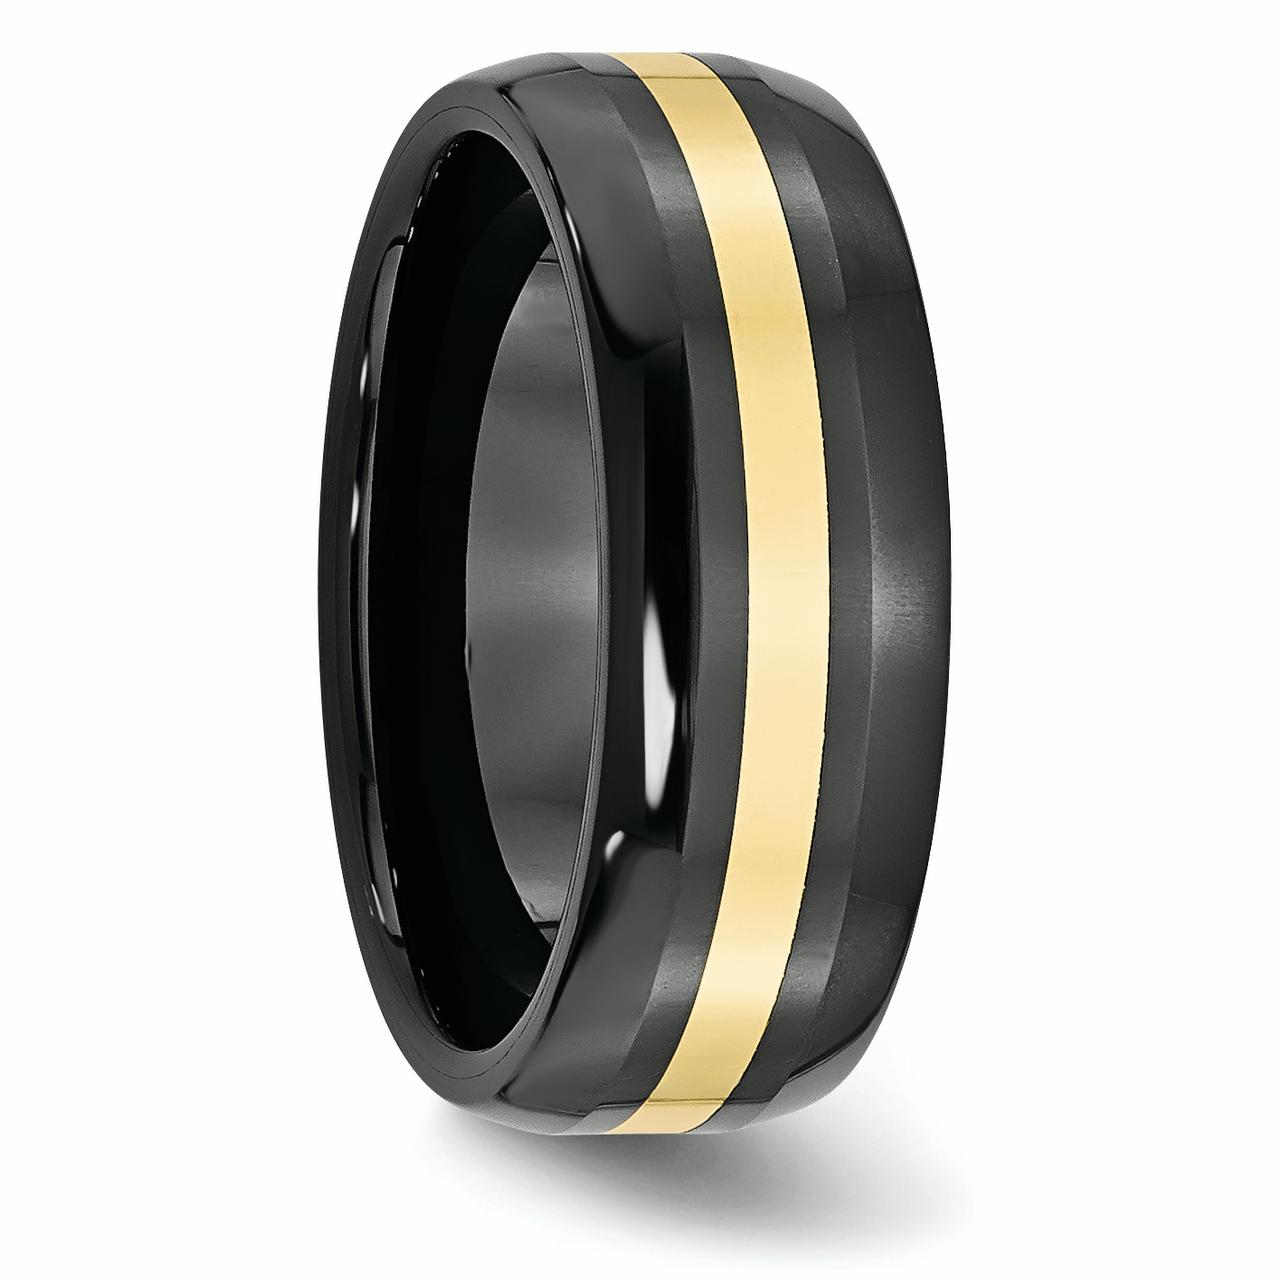 Ceramic Black with 14k Inlay 8mm Polished Band Ring 8.5 Size - image 1 de 6